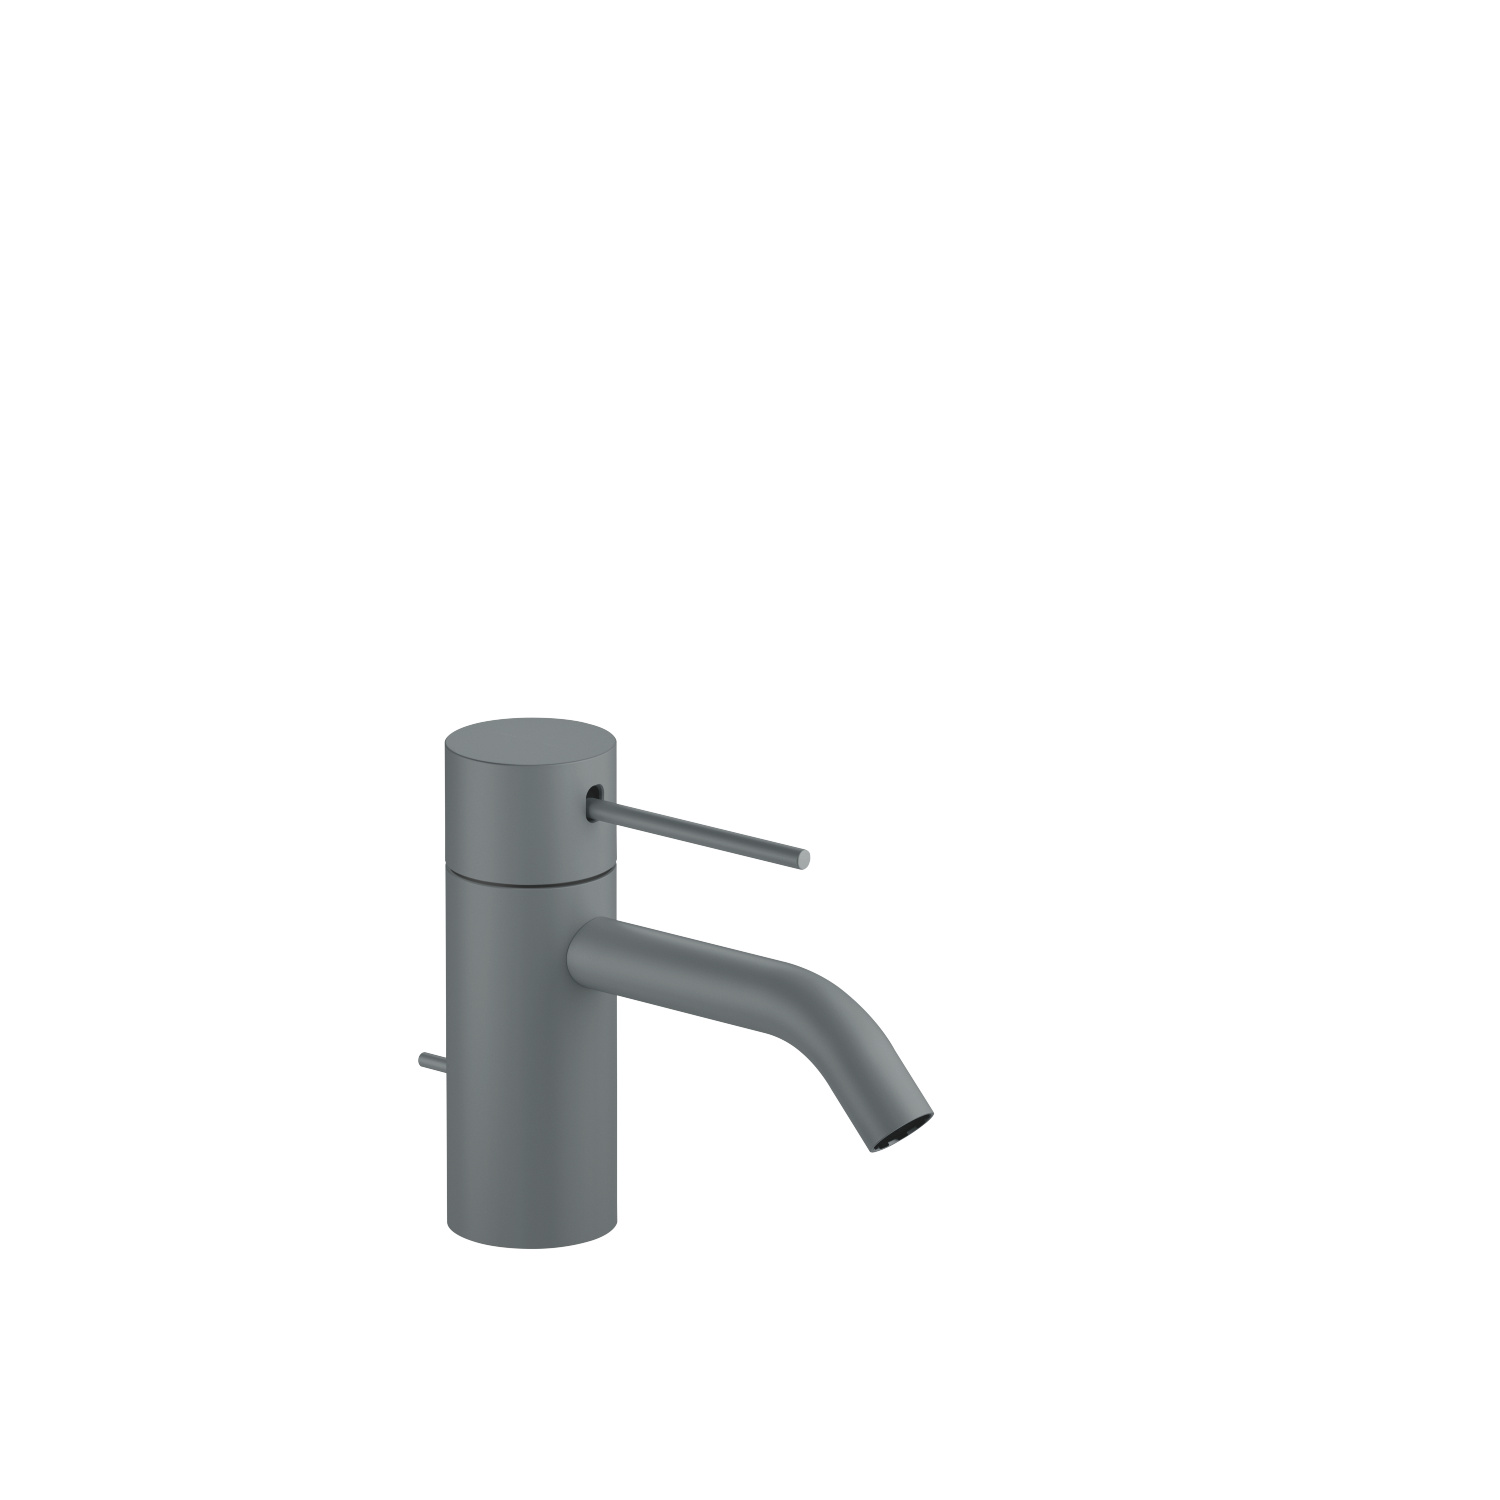 META SLIM Single-lever basin mixer with pop-up waste - light grey - 33 501 662-63